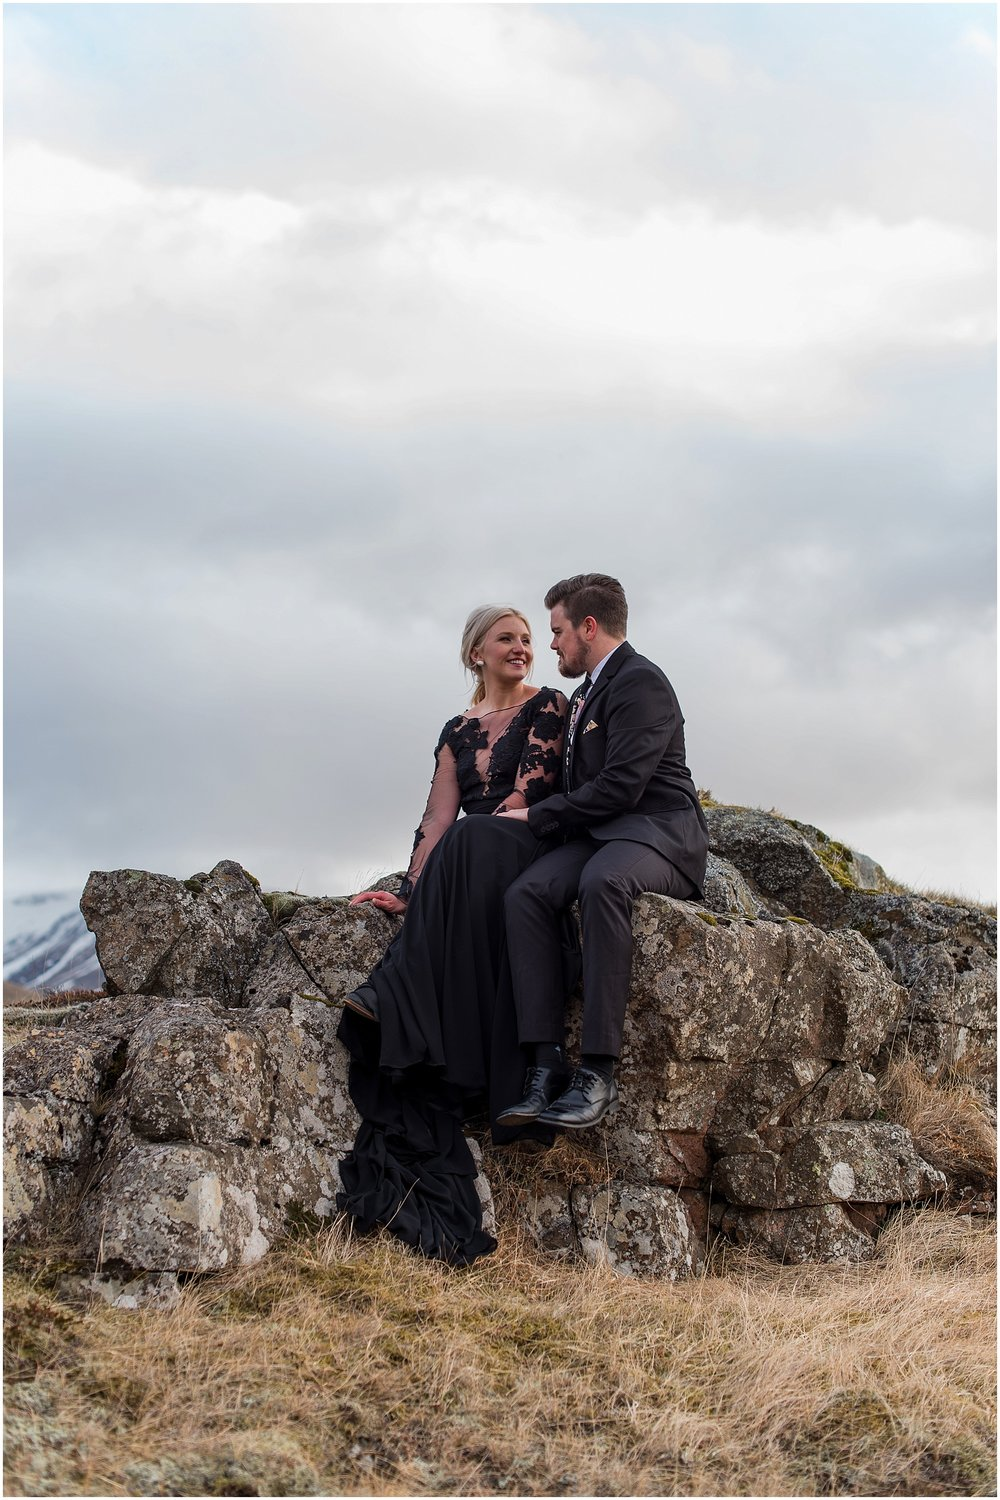 Hannah Leigh Photography Black Wedding Dress Iceland Elopement_2447.jpg